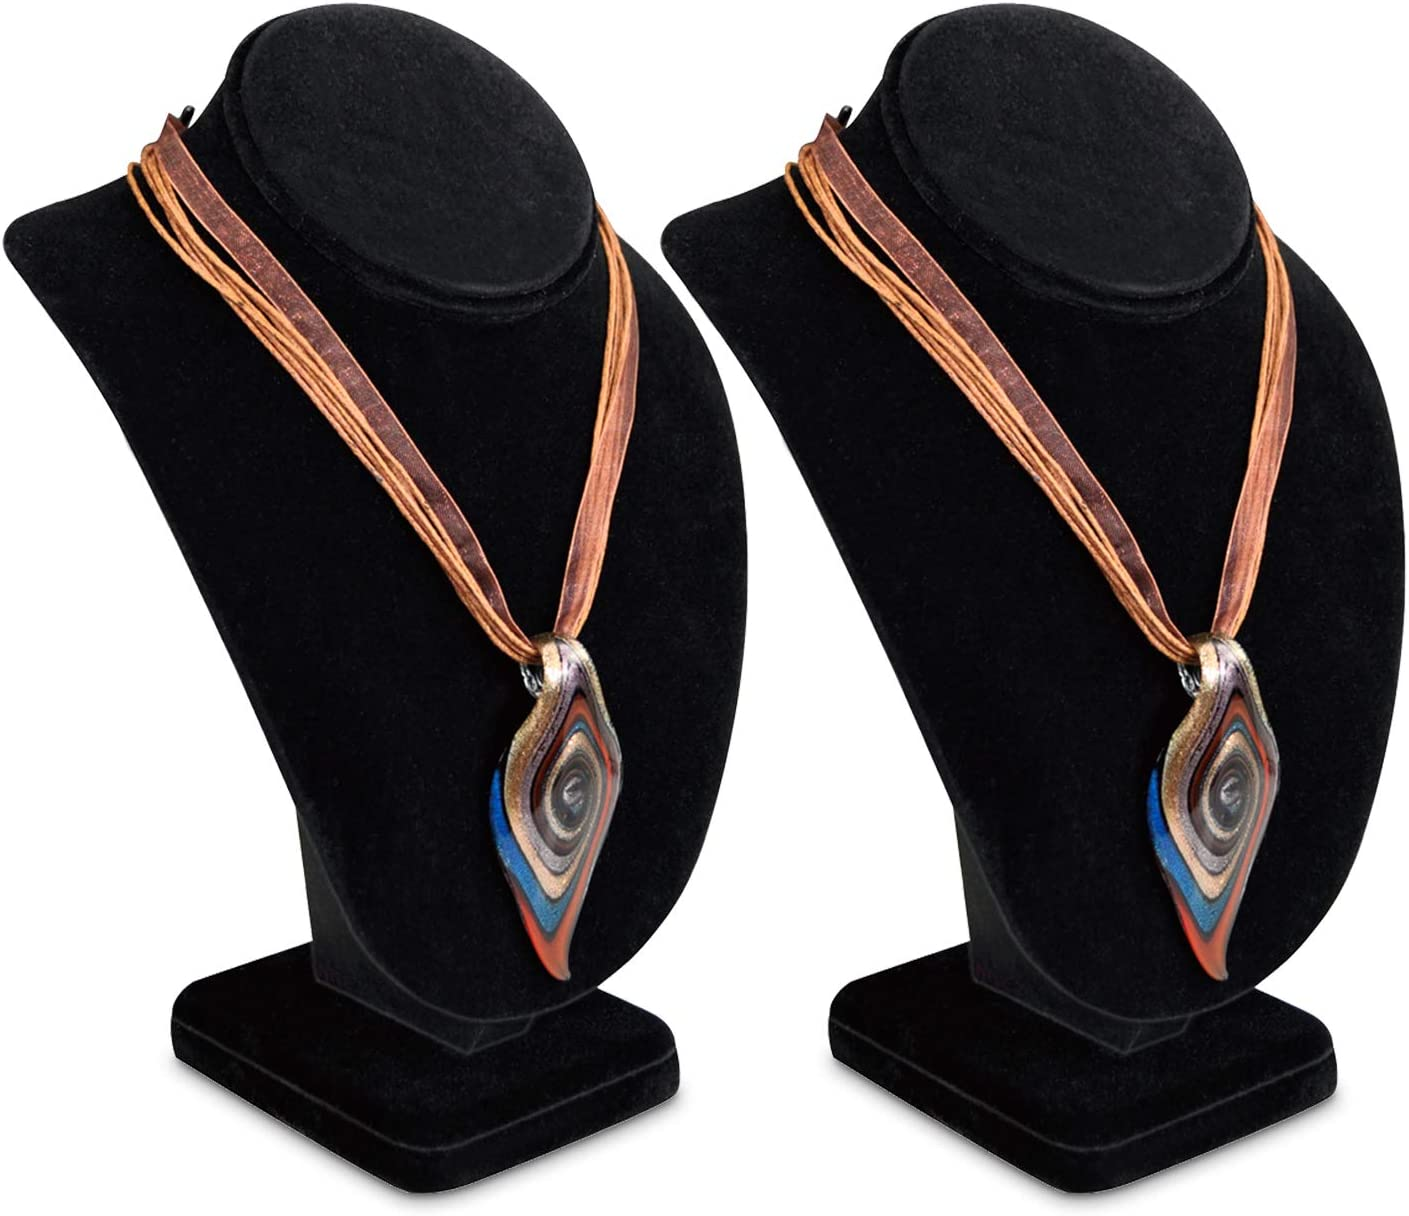 Necklace Chain Jewelry Bust Display Holder Stand Velvet Necklaces Display Necklace Mannequin Black Velvet Mooca Combination Necklace Ring and Earring Bust Display 5 W x 4 1//8 D x 7 1//2 H